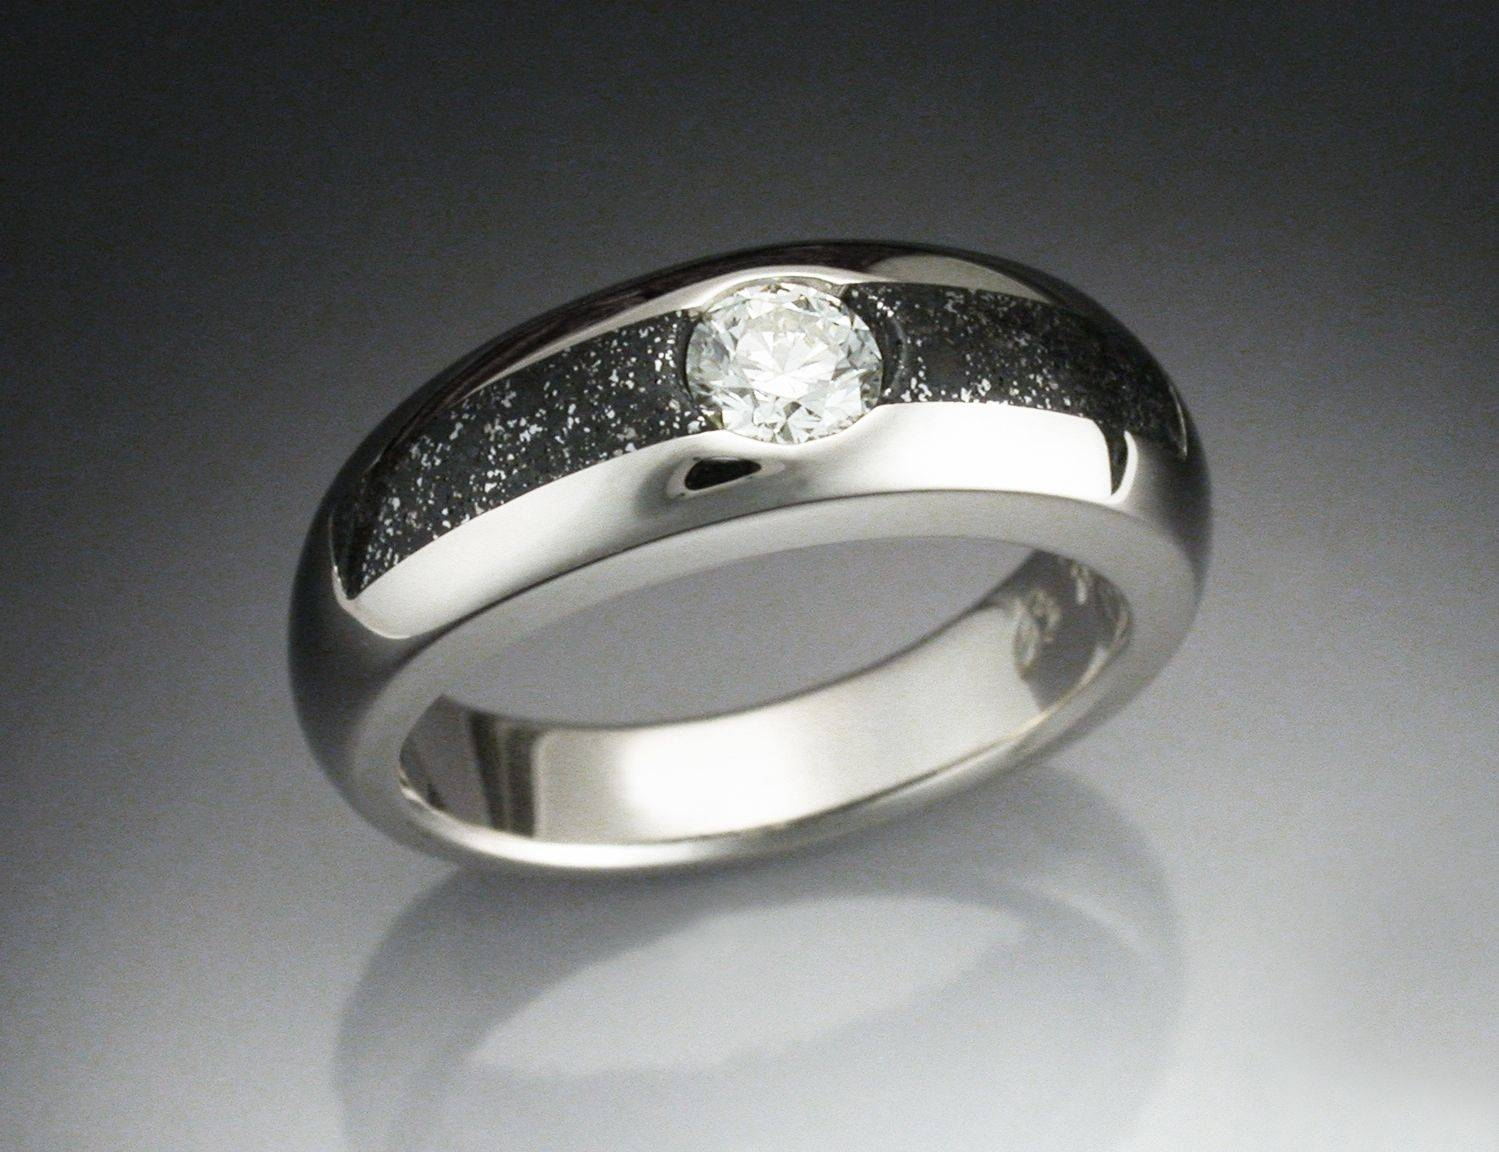 Meteorite Engagement Ring – Jewelry Exhibition For Dinosaur Bone Engagement Rings (View 8 of 15)